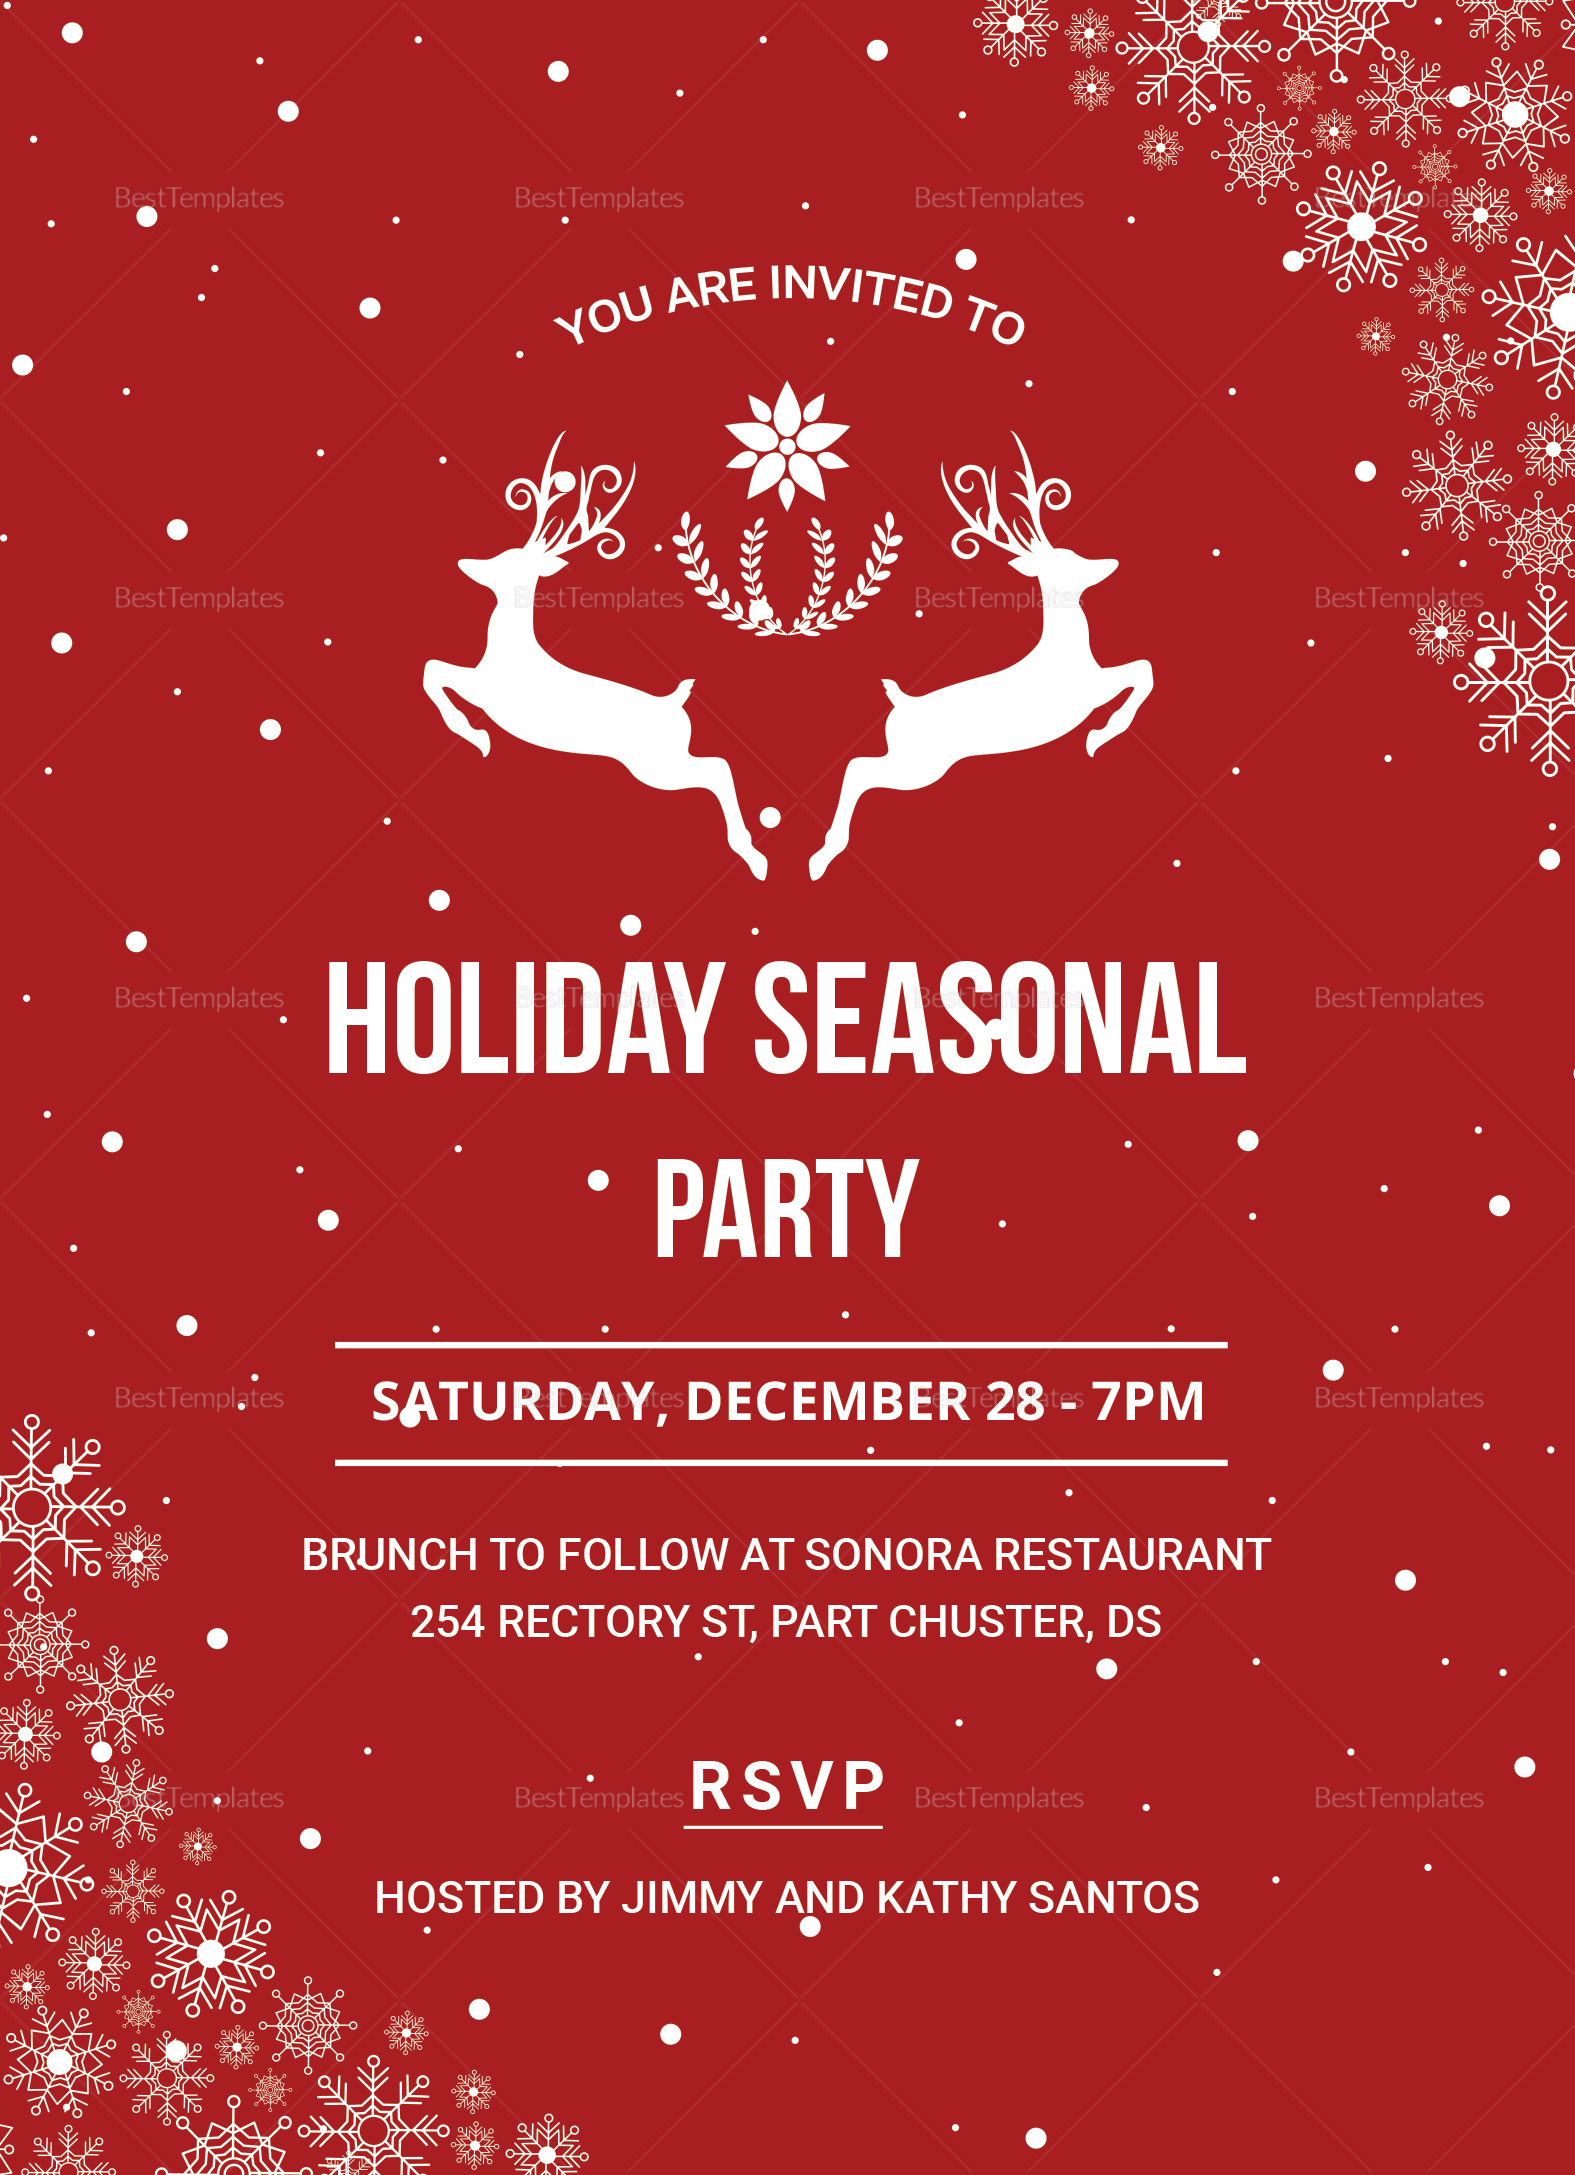 Festive Holiday Party Invitation Design Template In PSD Word Publisher